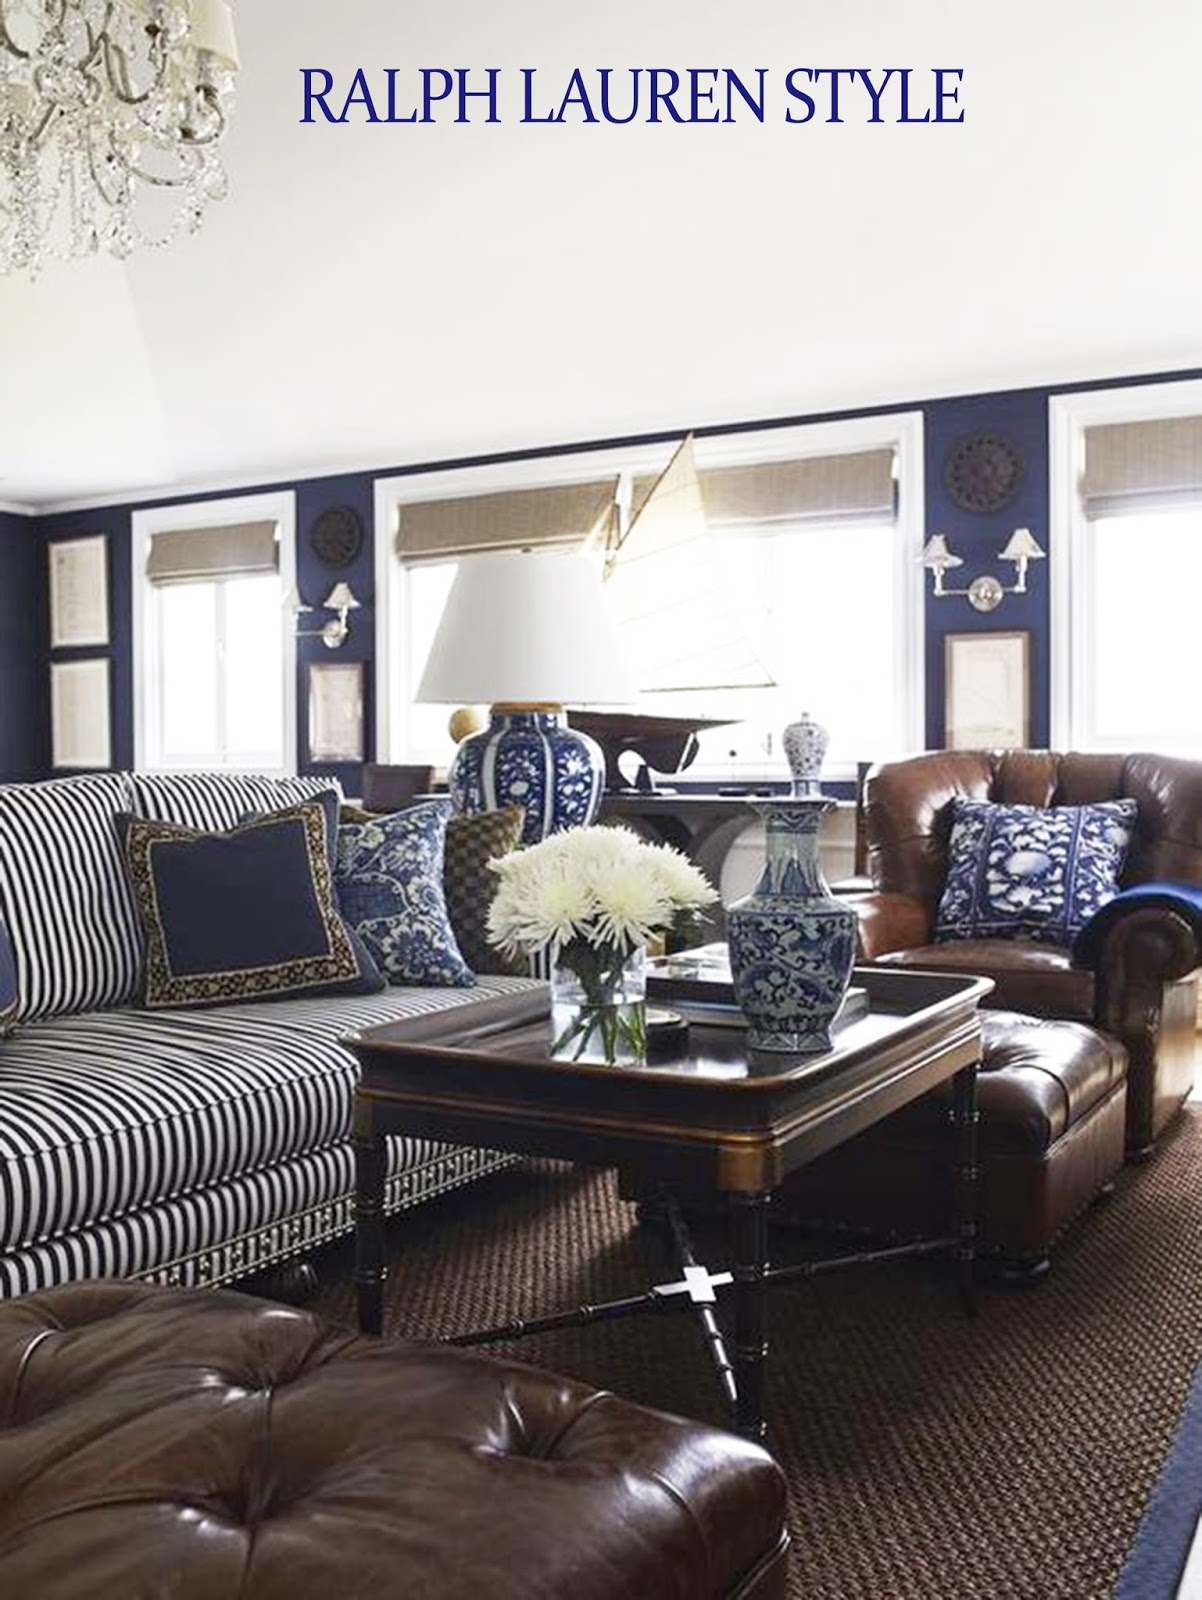 coastal style ralph lauren in navy brown. Black Bedroom Furniture Sets. Home Design Ideas